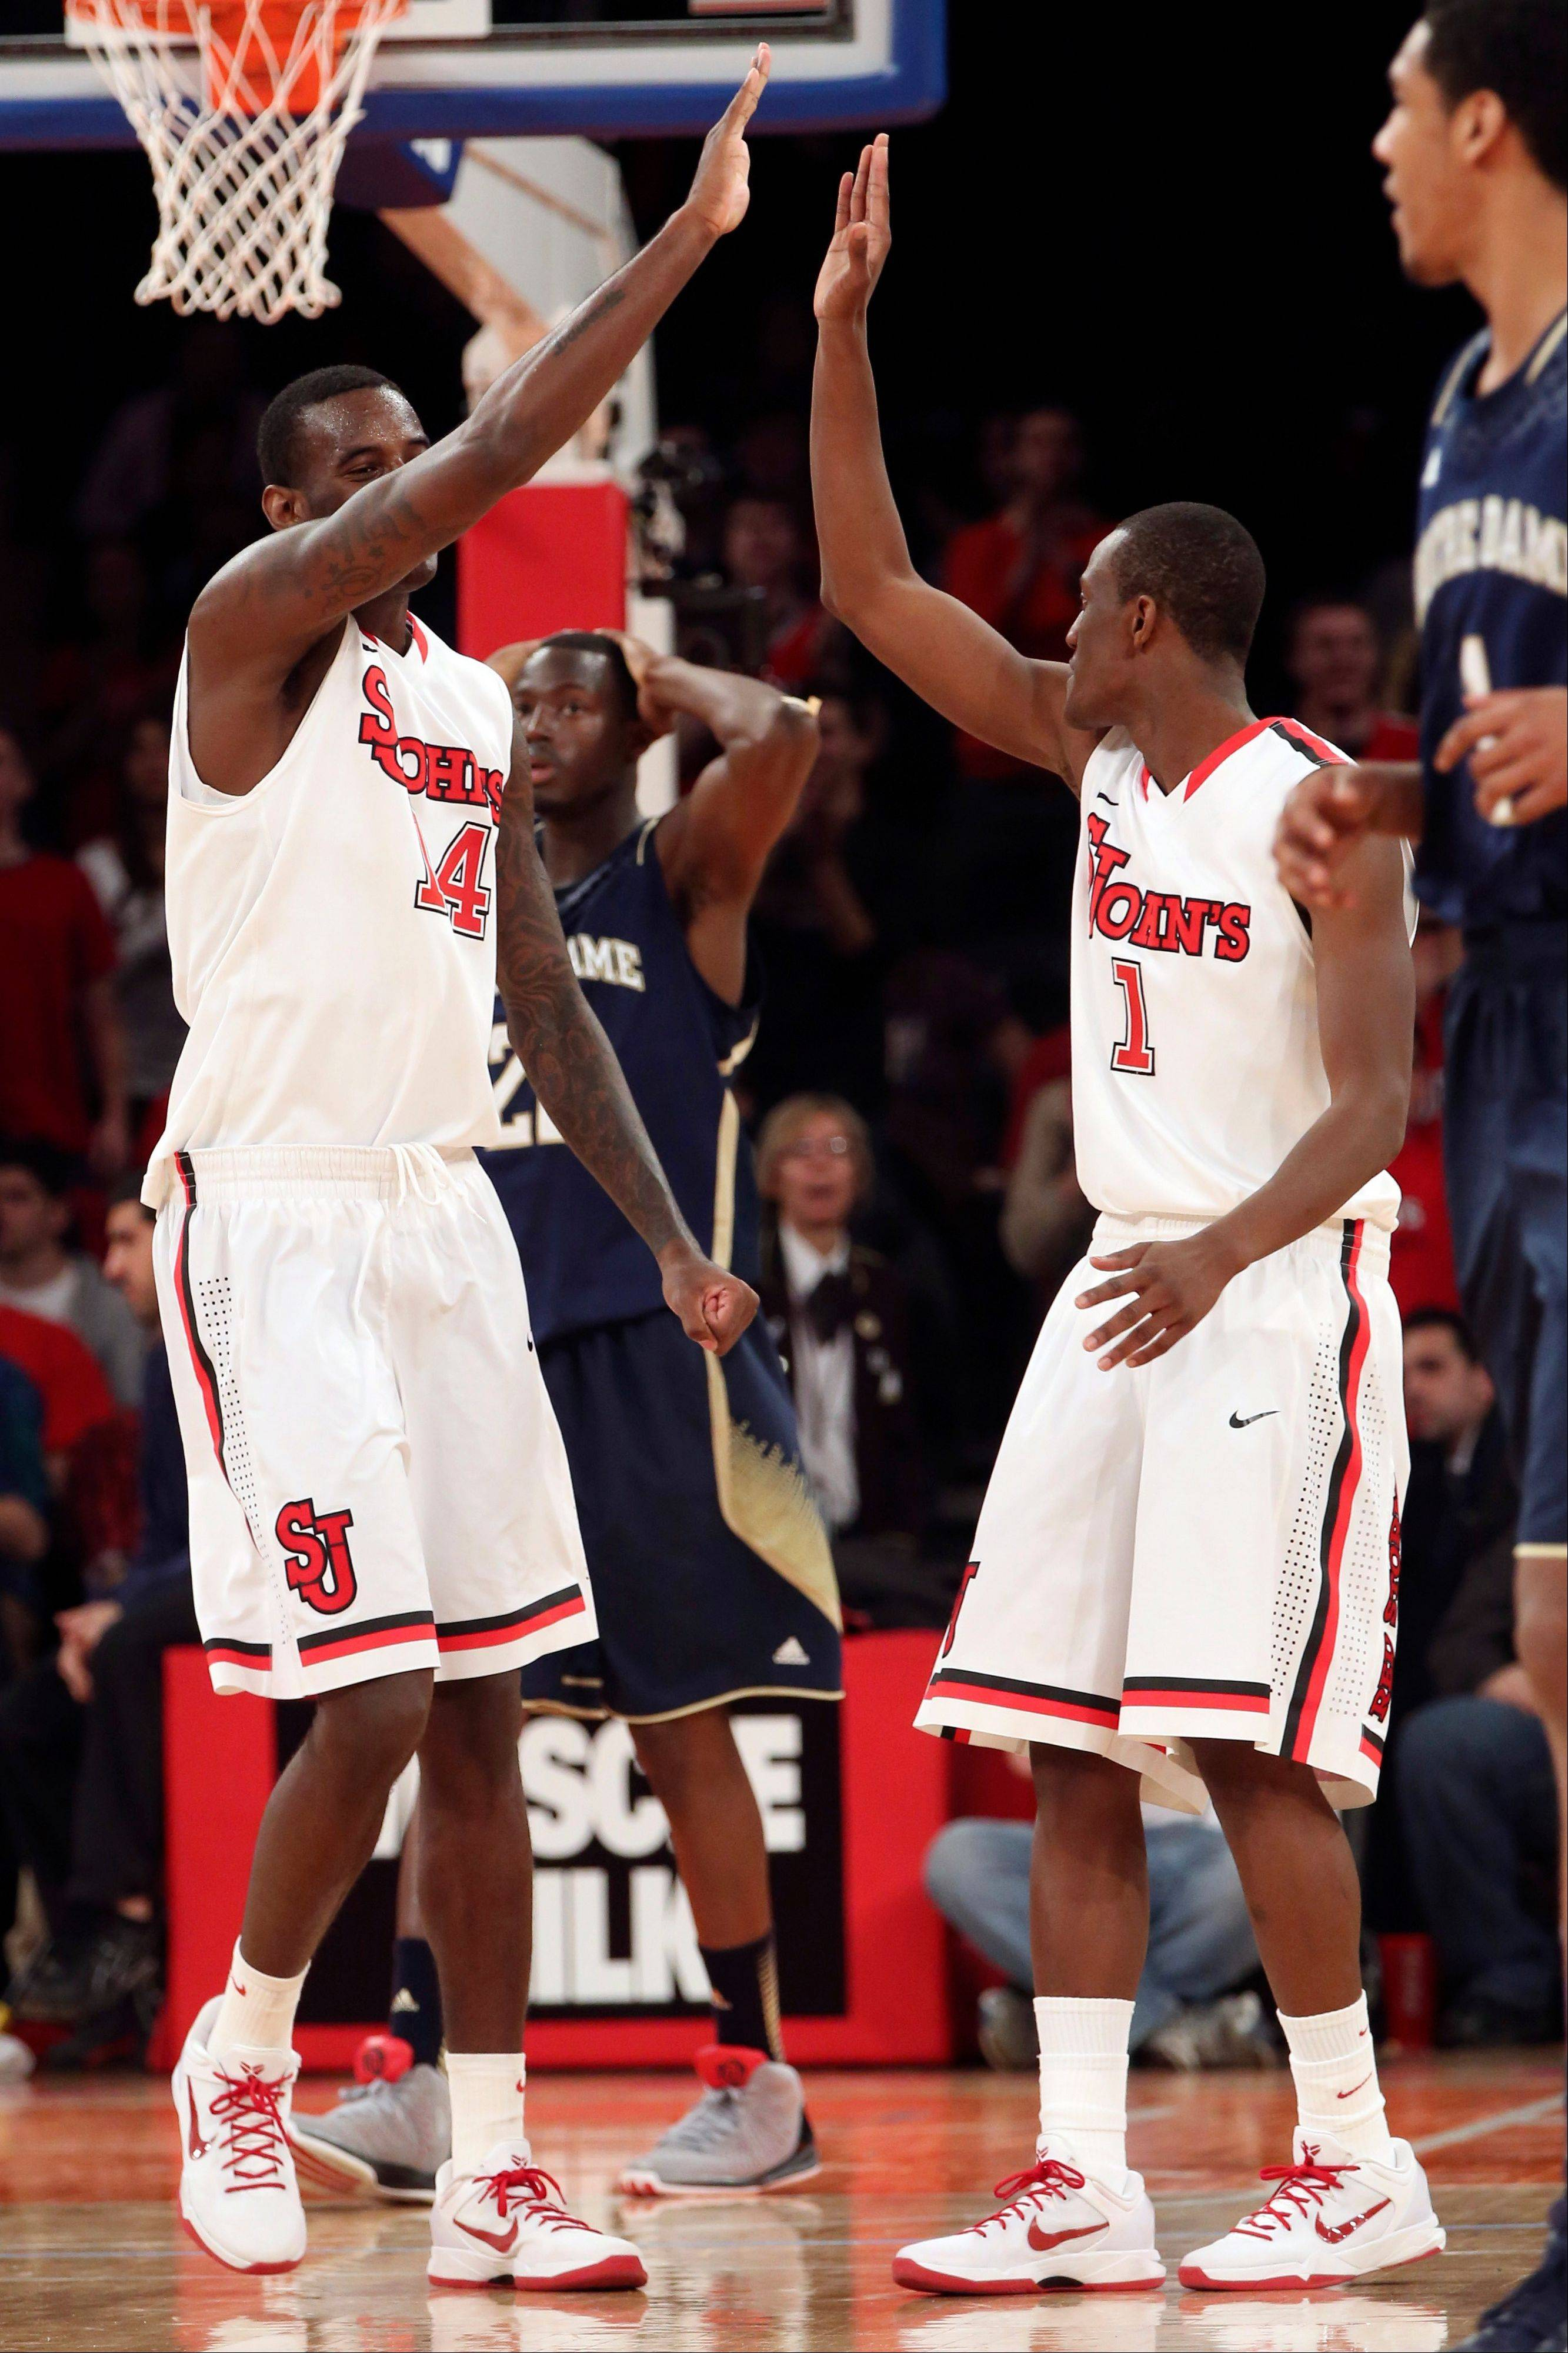 St. John's Jakarr Sampson, left, and Phil Greene IV celebrate a call during the second half of the NCAA college basketball game against Notre Dame, Tuesday, Jan. 15, 2013, at Madison Square Garden in New York. St. John's won 67-63. (AP Photo/Mary Altaffer)